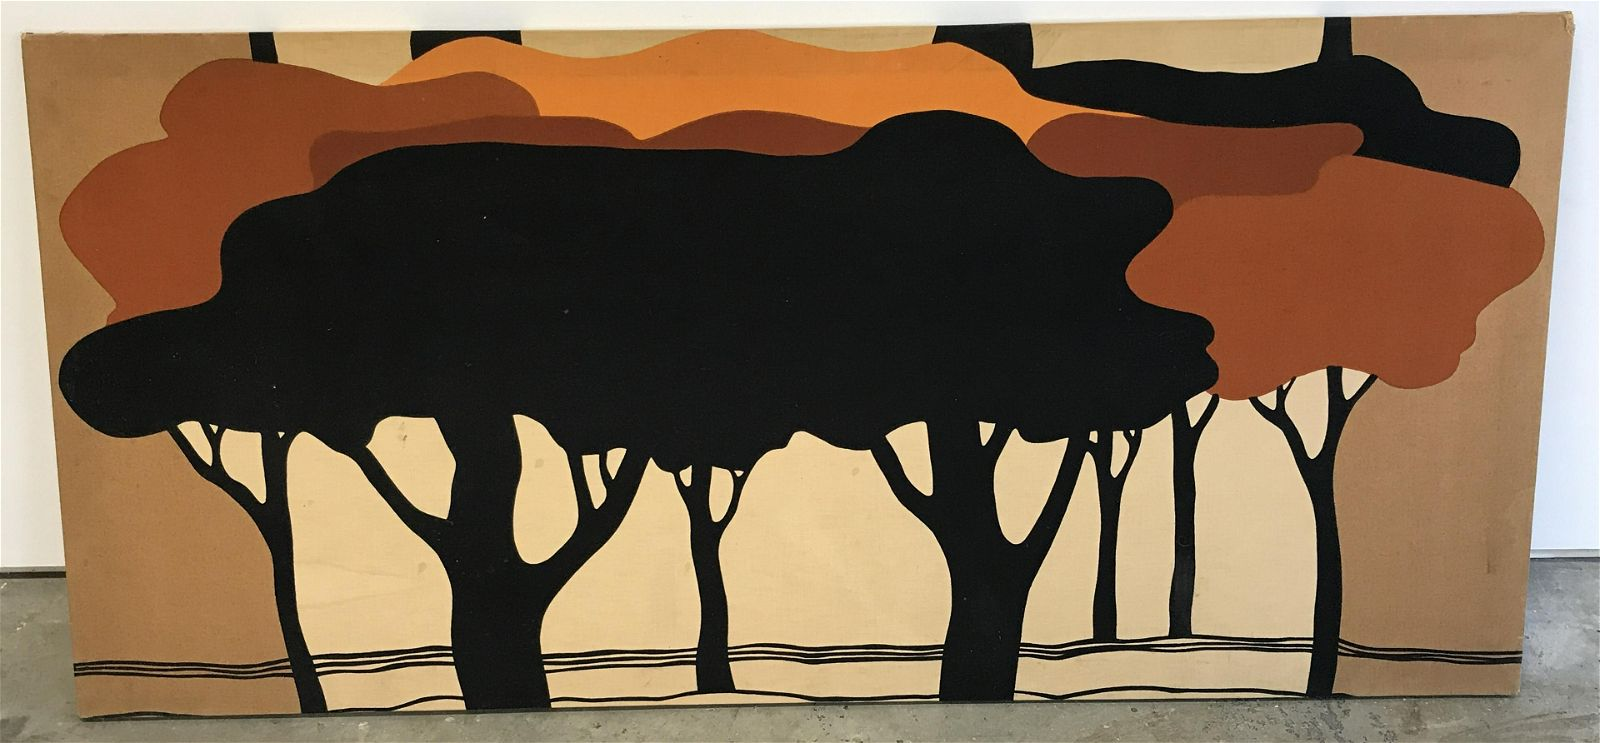 Minimalist Trees Artwork Print On Fabric Oct 07 2020 The Benefit Shop Foundation Inc In Ny